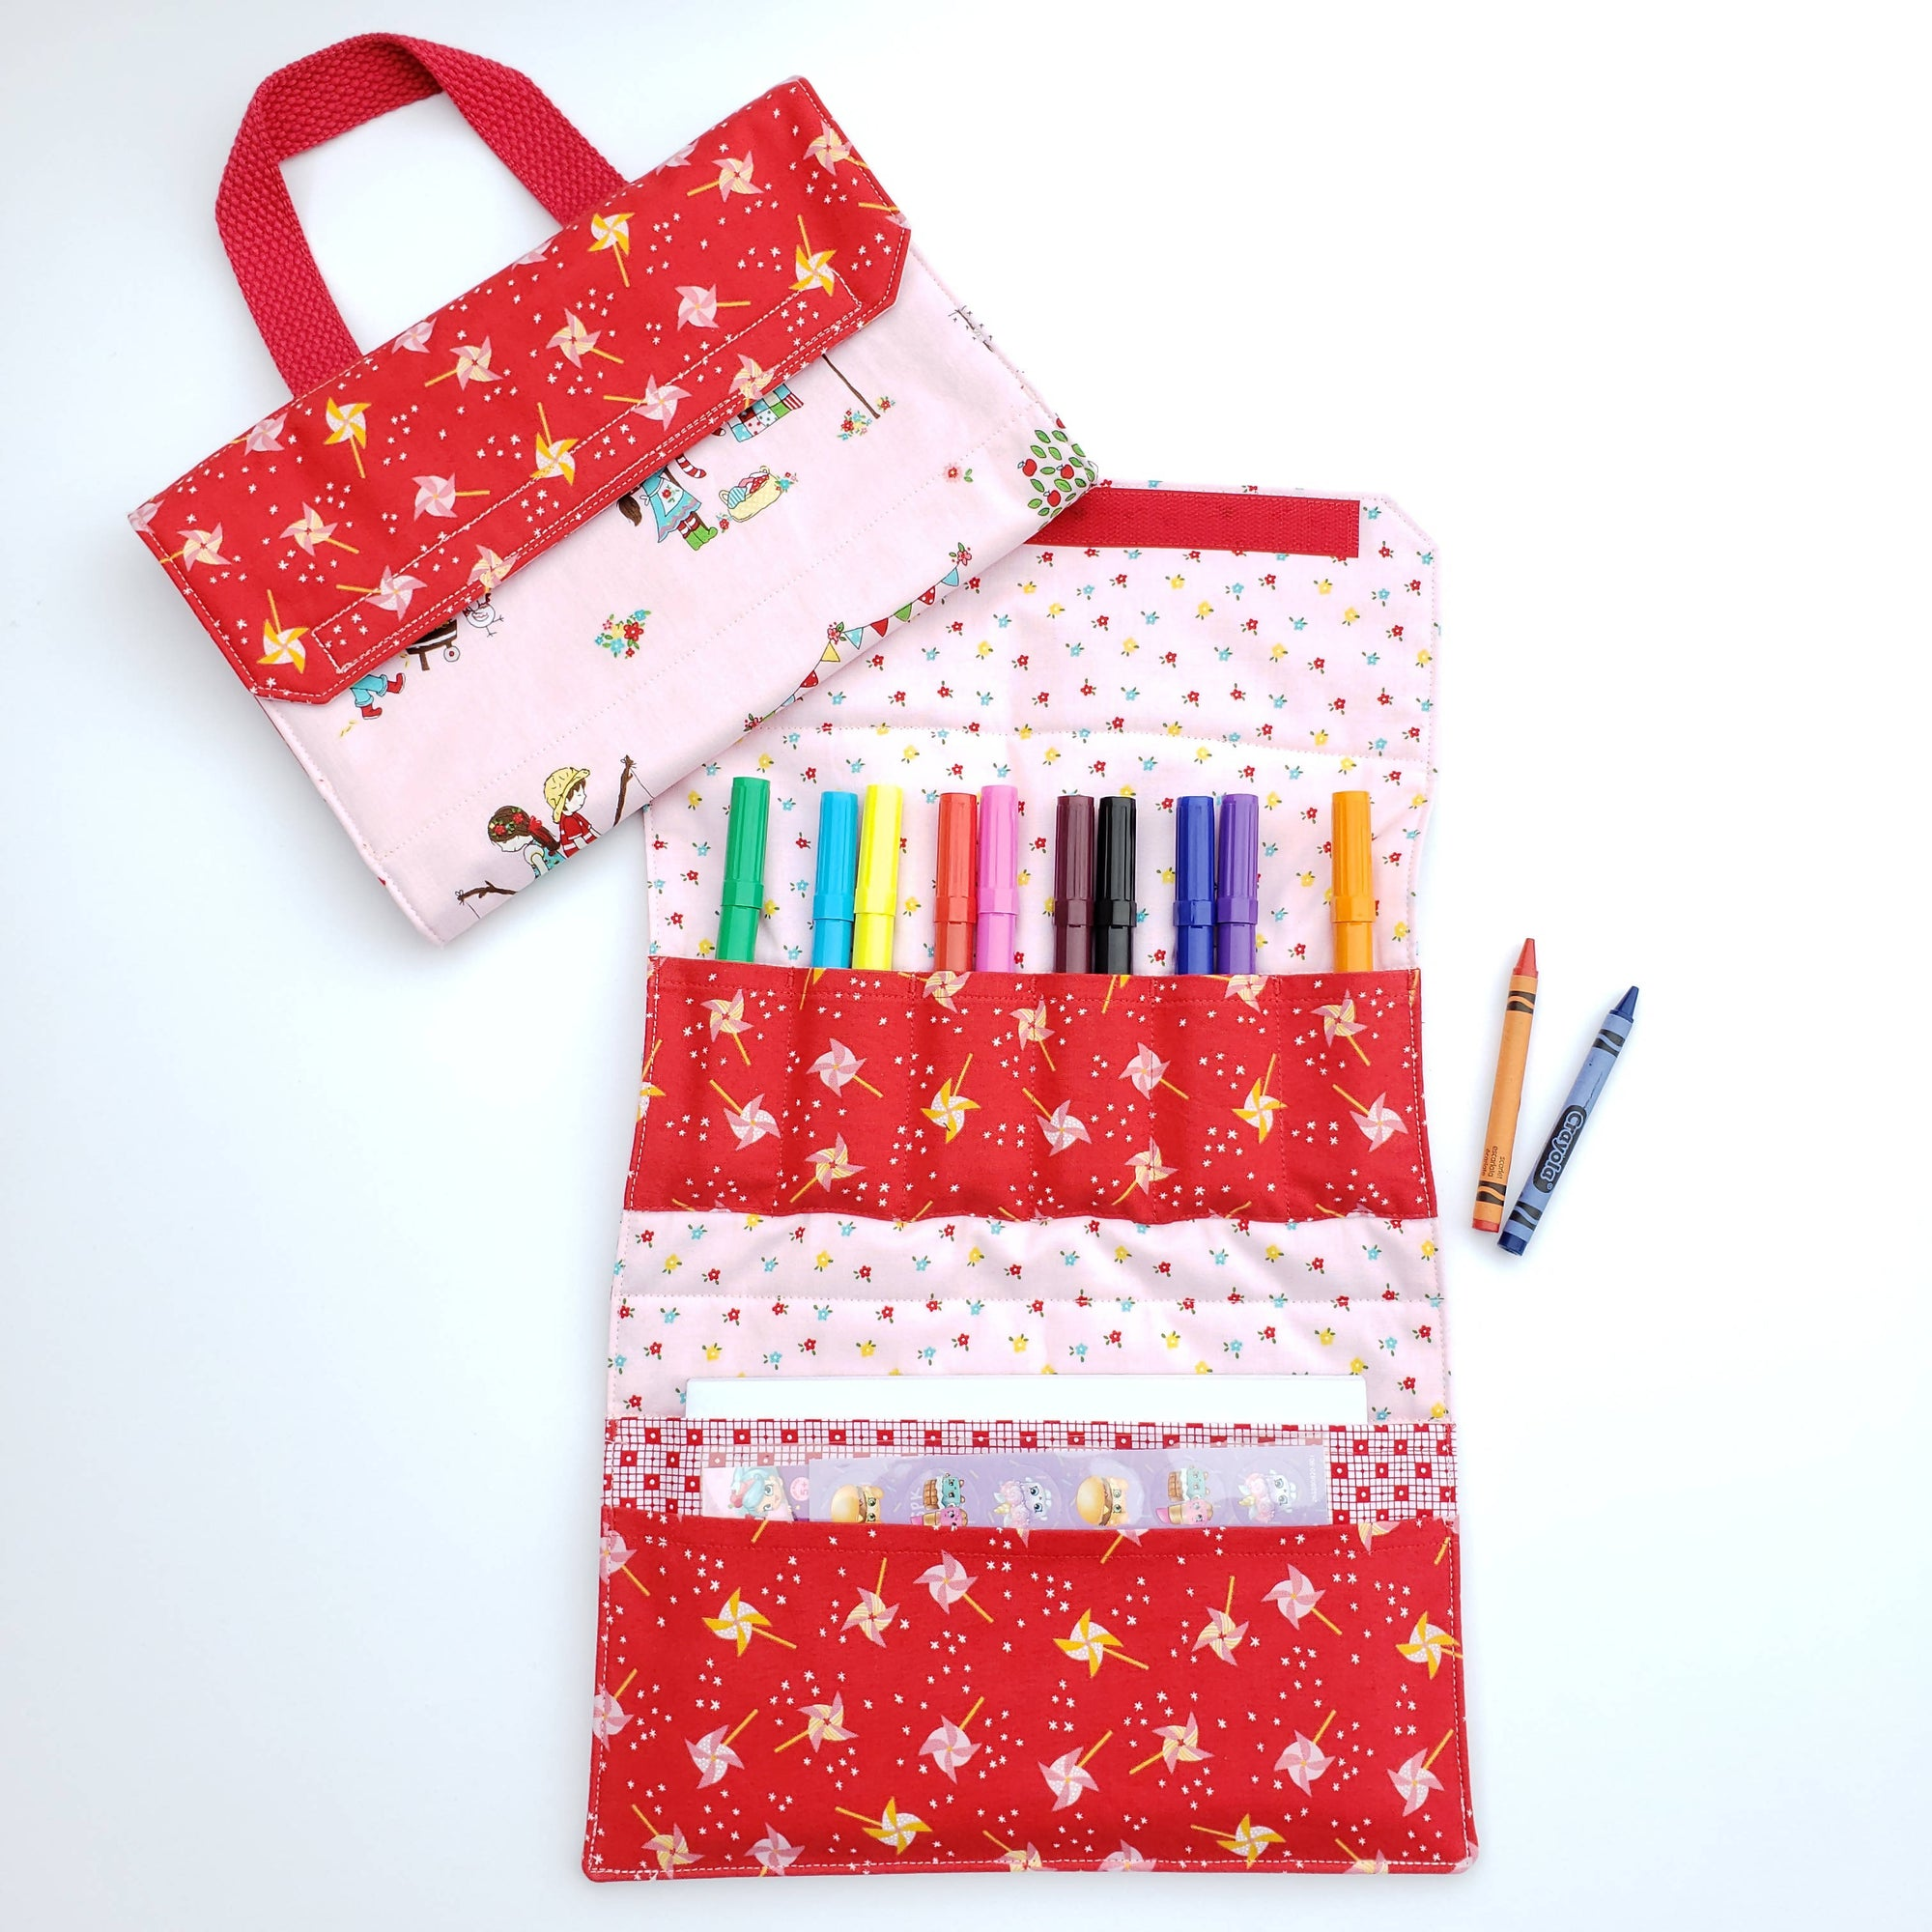 Craft Tote - Simple Goodness on Pink